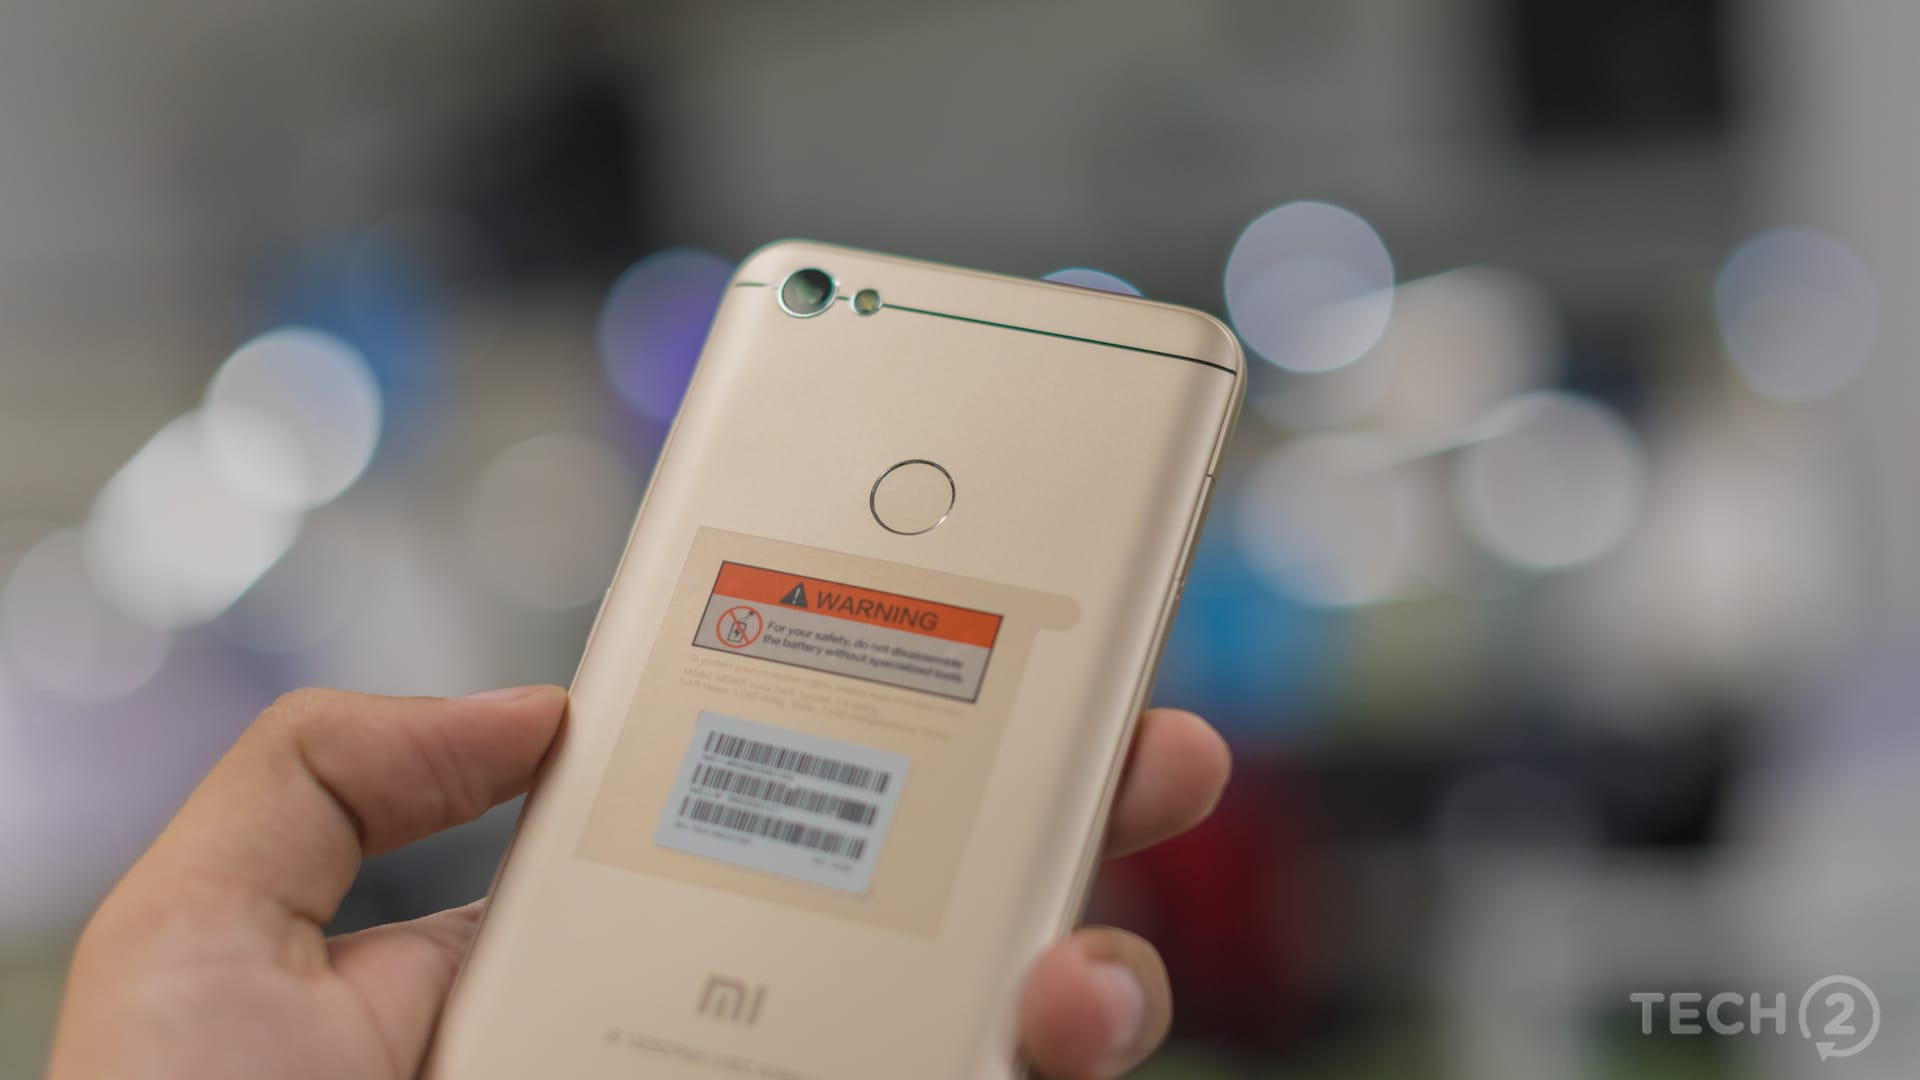 The fingerprint scanner is placed on the back of the Xiaomi Redmi Y1. Image: tech2/Rehan Hooda